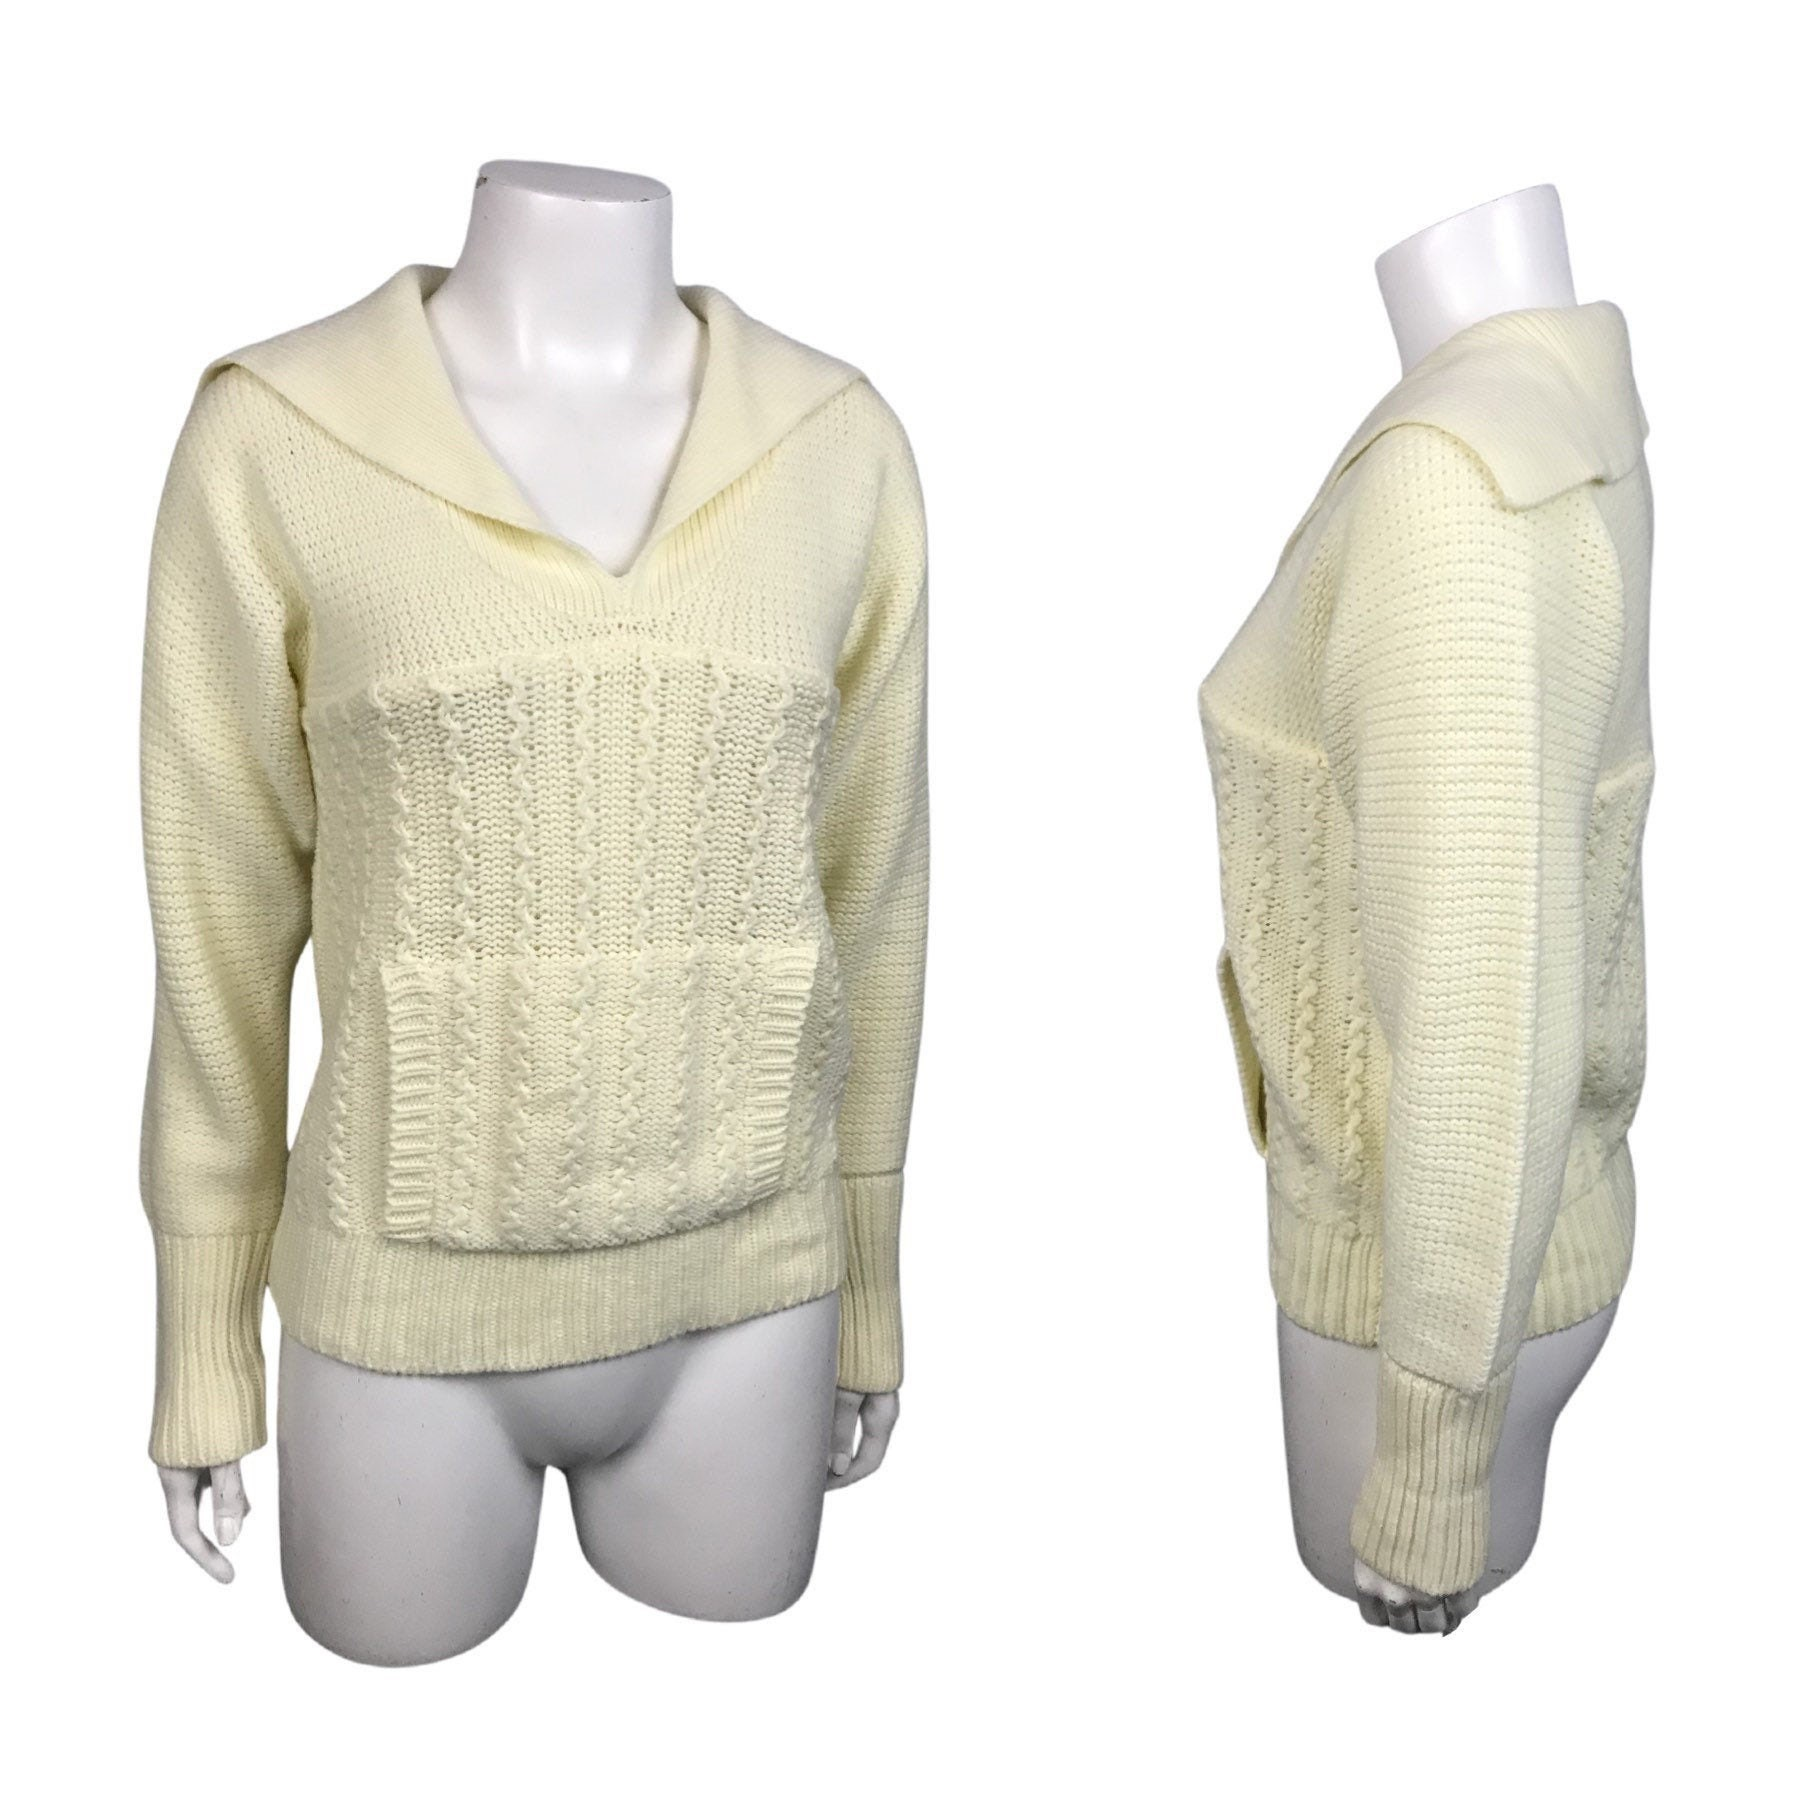 80s Sweatshirts, Sweaters, Vests | Women 1980S SweaterBeige Cable Knit Pullover With Front Pocket Pouch Womens Xs $45.50 AT vintagedancer.com